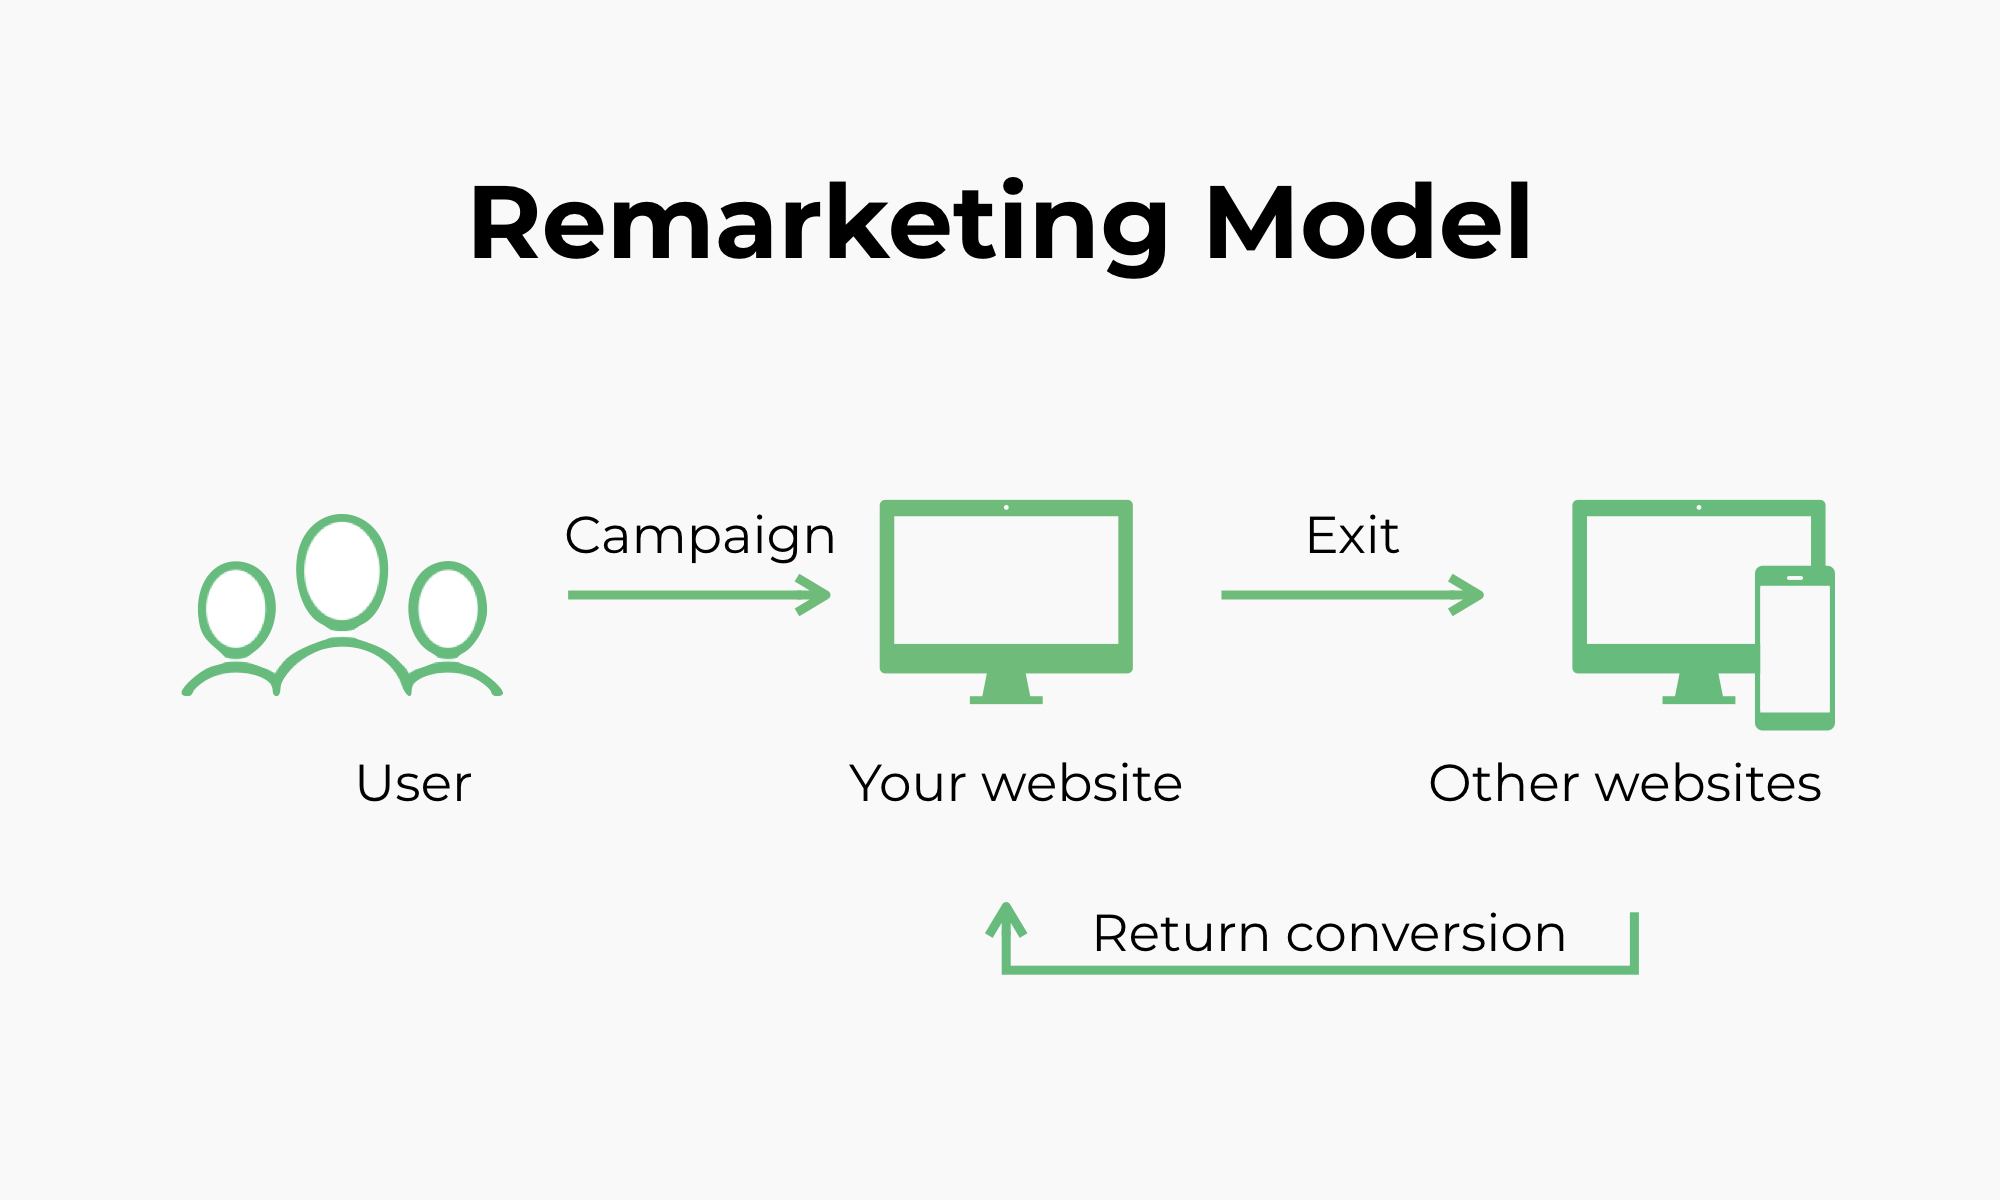 Remarketing model